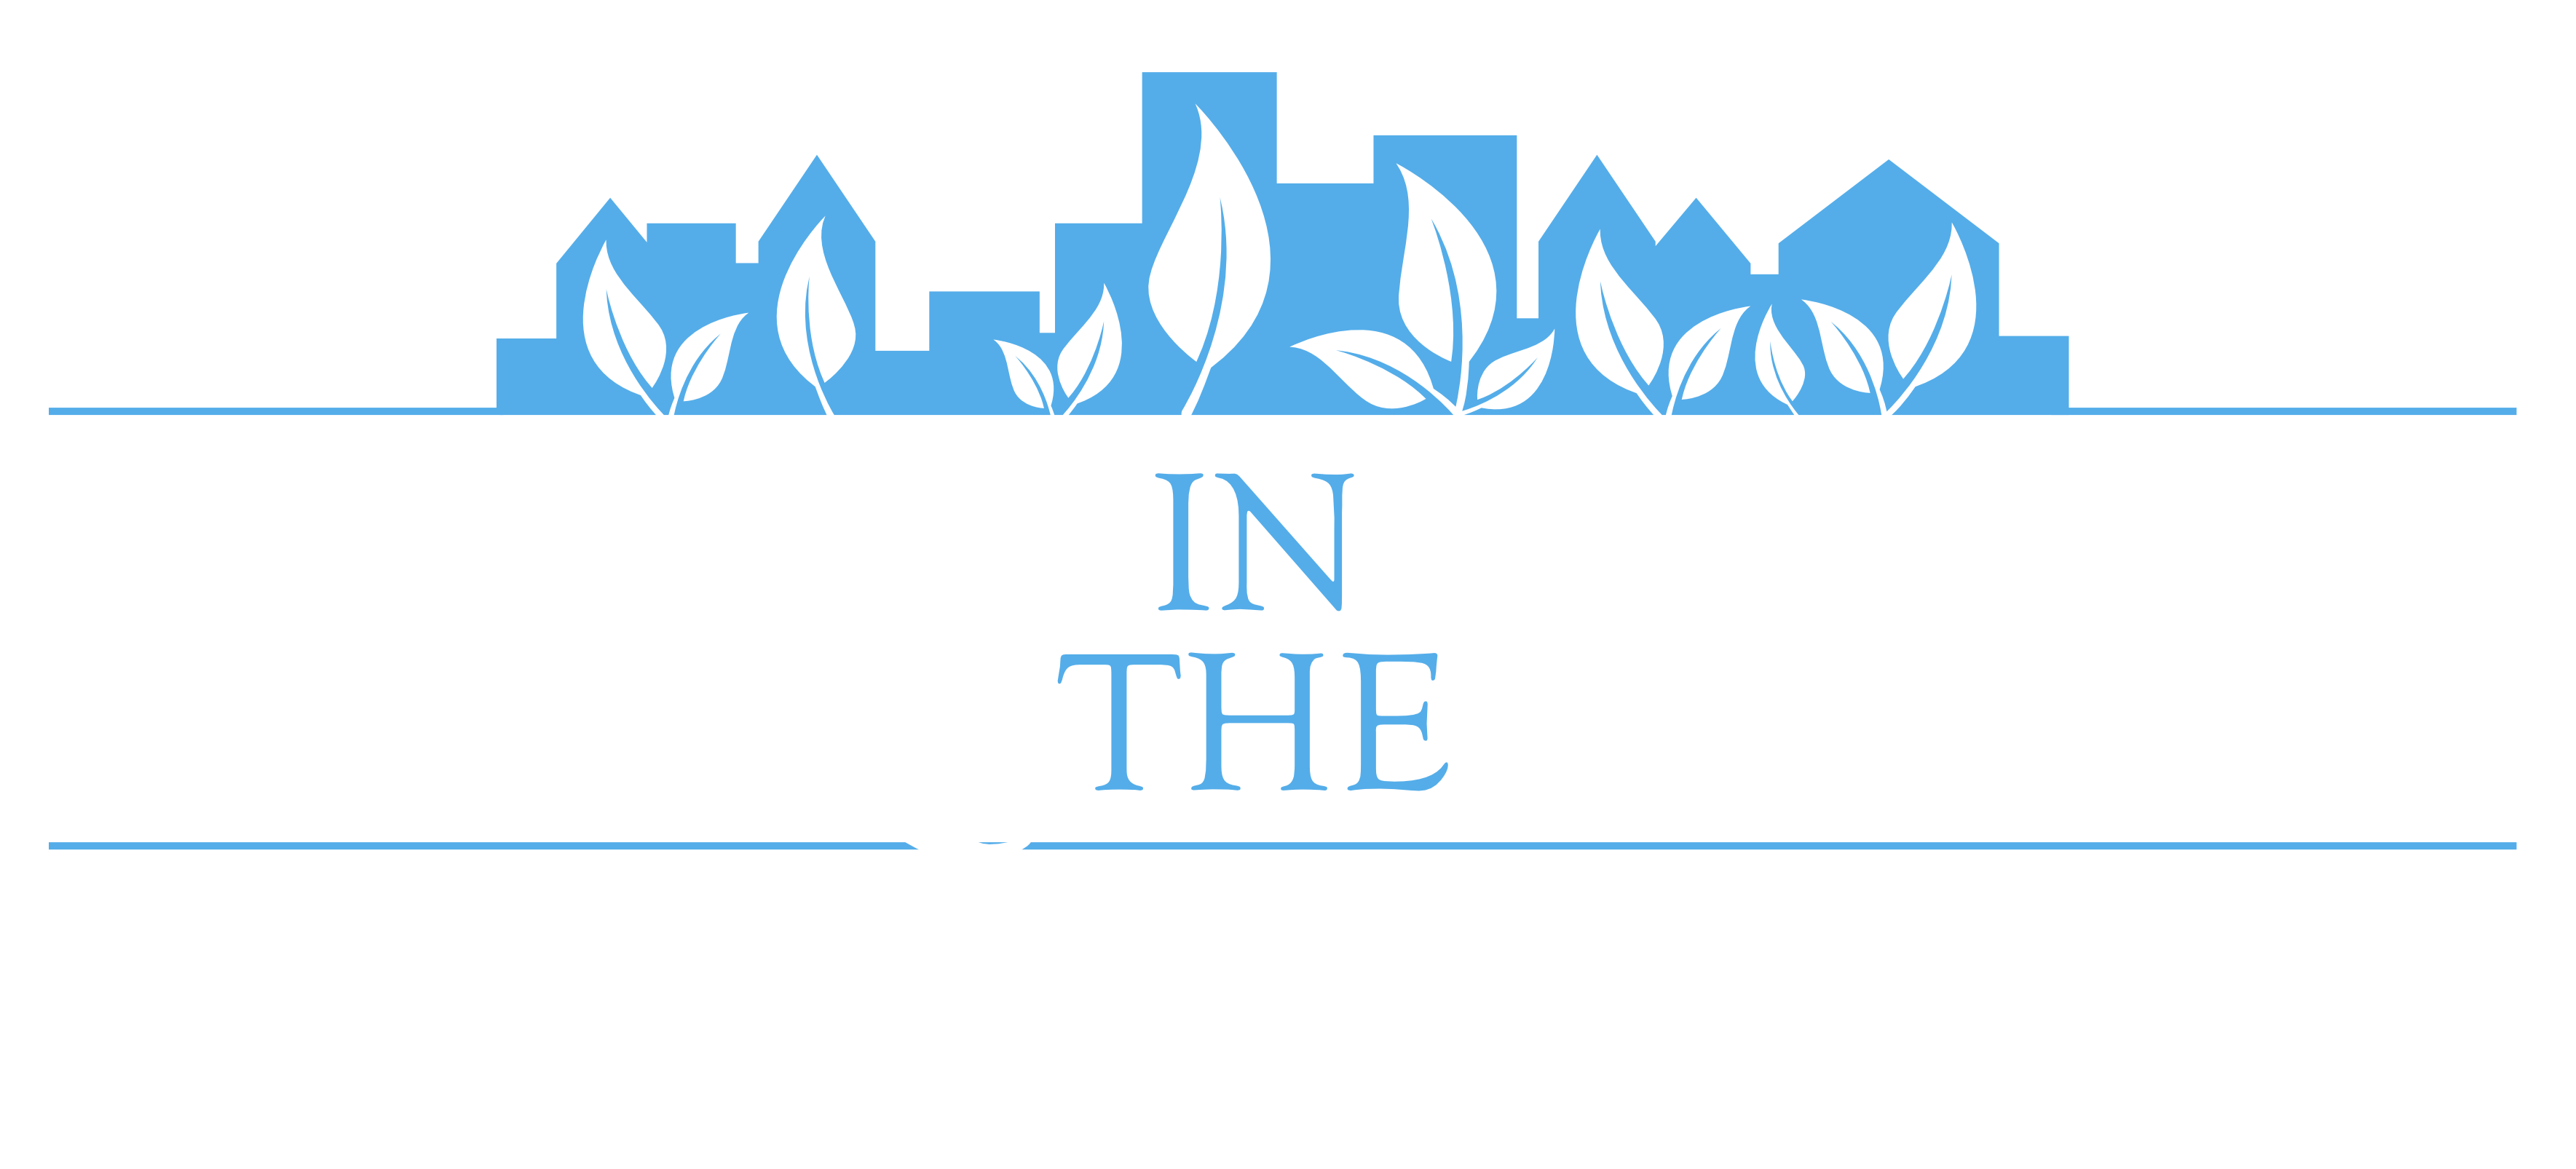 HRQ in the CITY